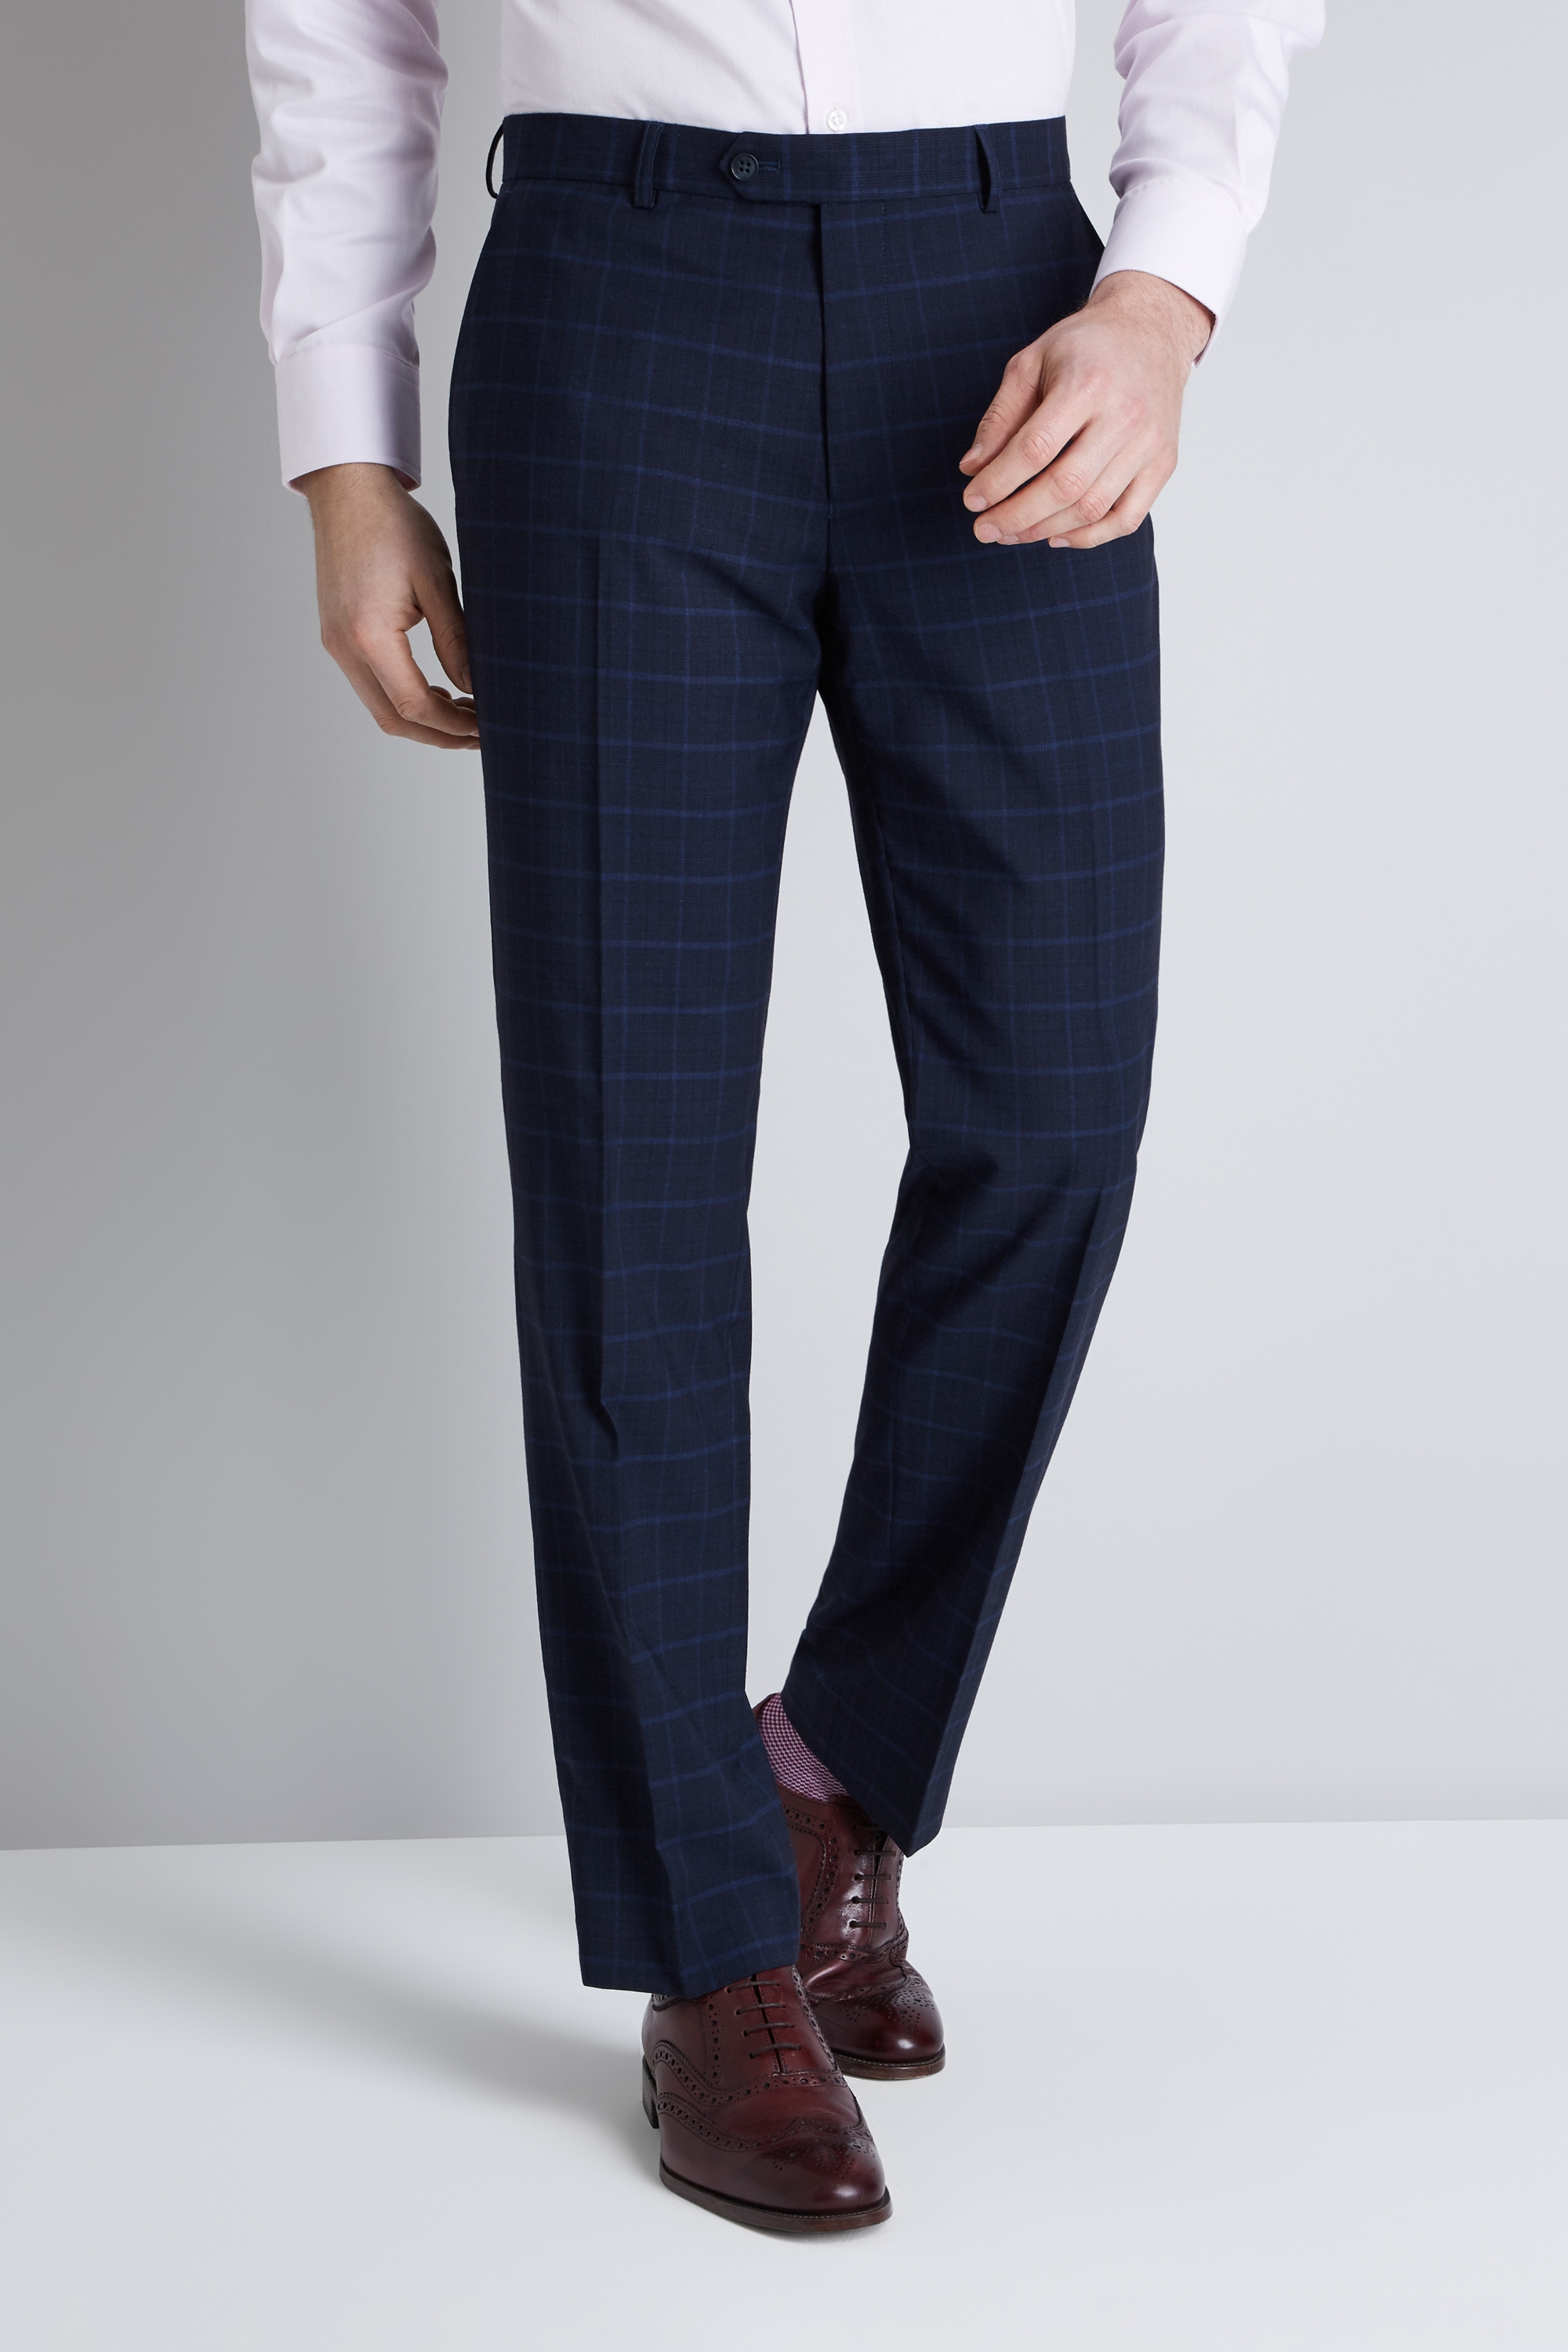 751355fe0 Details about Moss Esq. Mens Blue Check Trousers Regular Fit Flat Front  Suit Pants Belt Loops